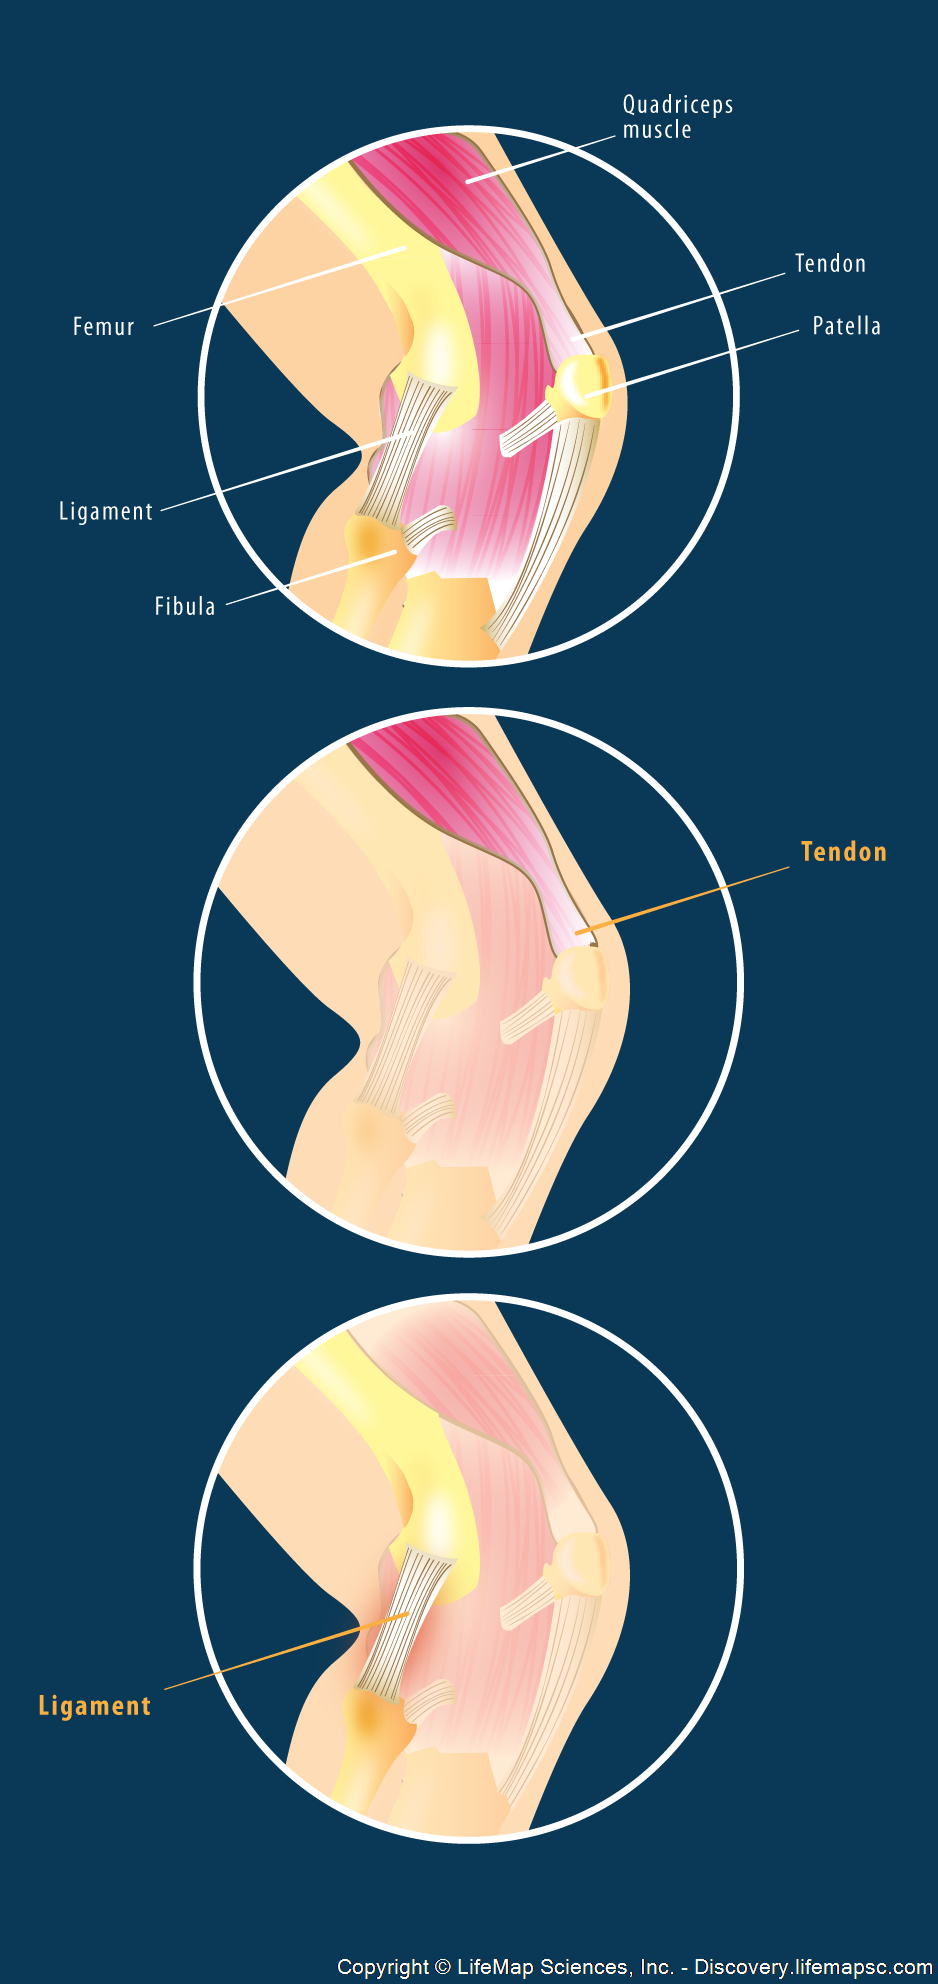 Tendons and Ligaments of the Human Knee